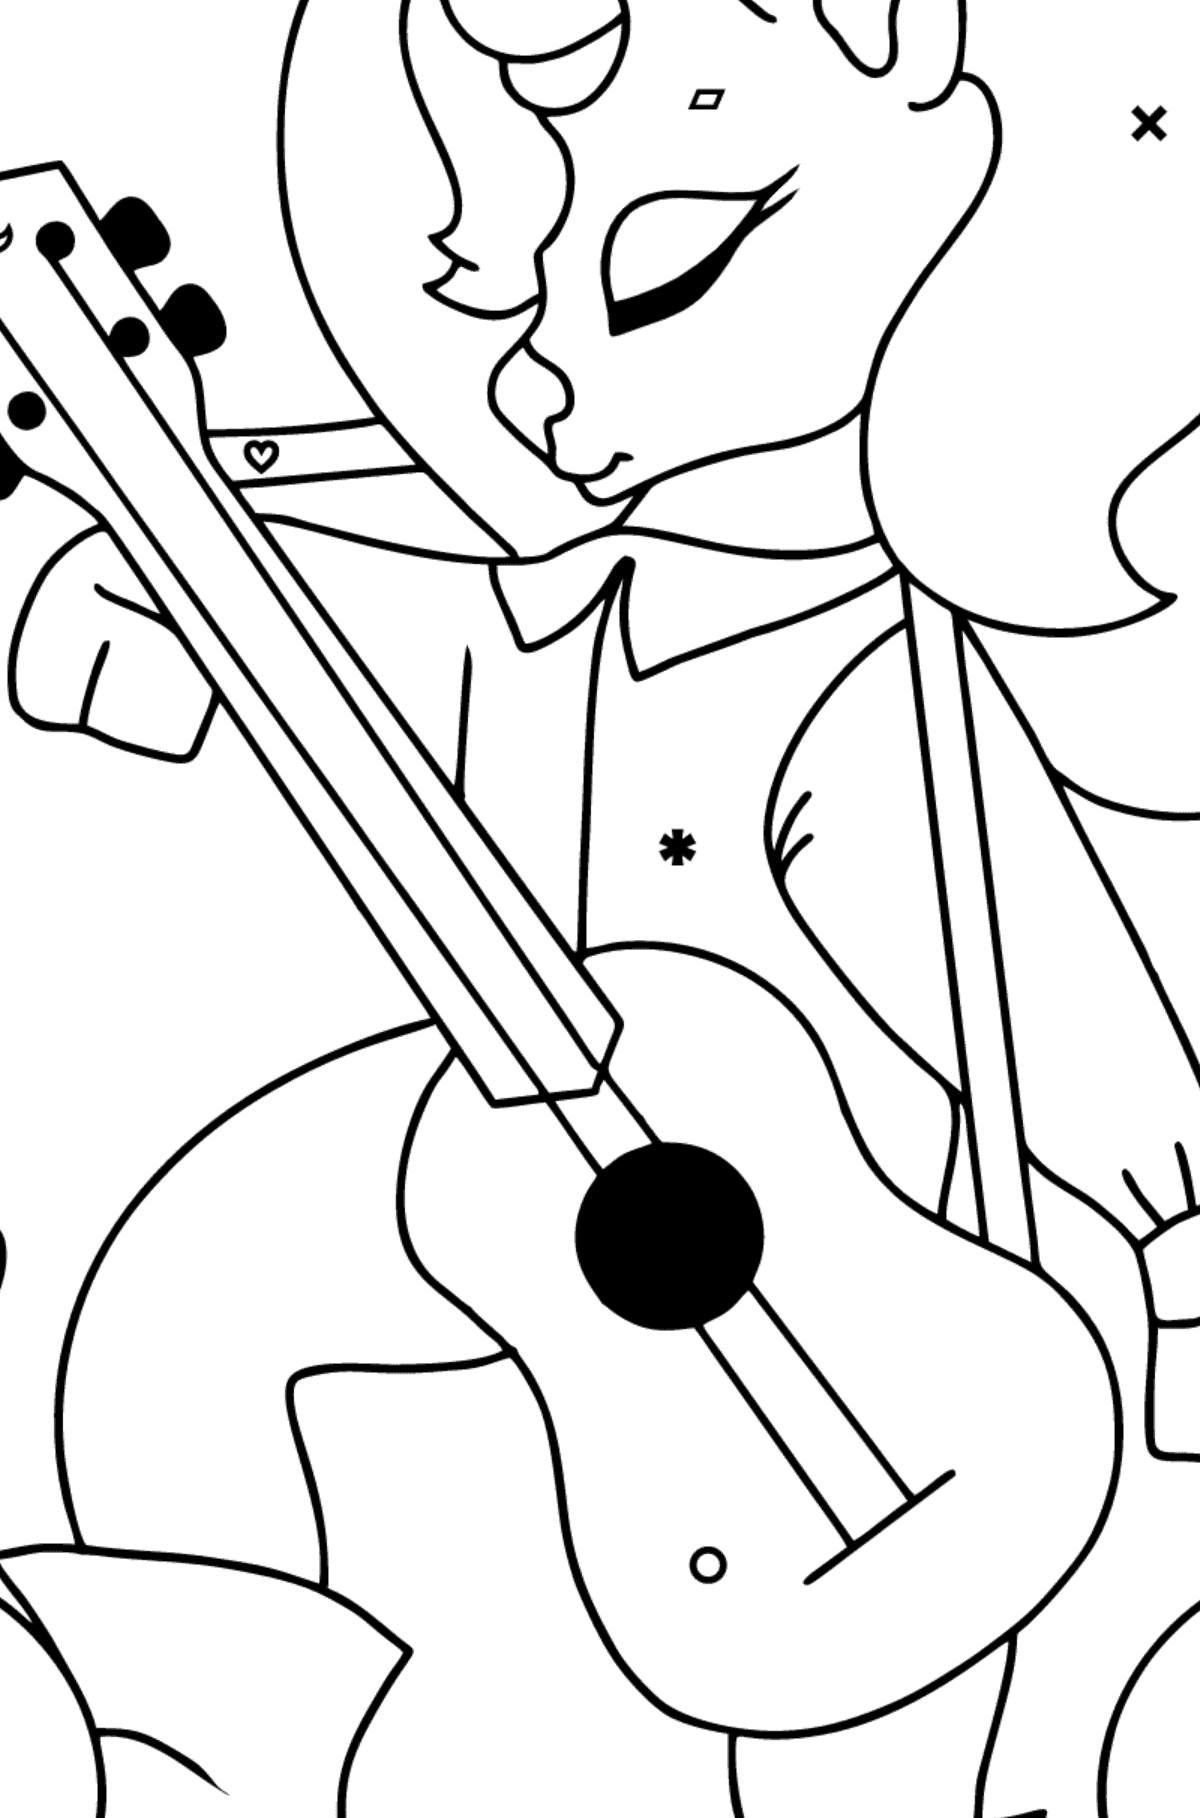 Simple Coloring Page - A Unicorn with a Guitar for Kids  - Color by Symbols and Geometric Shapes